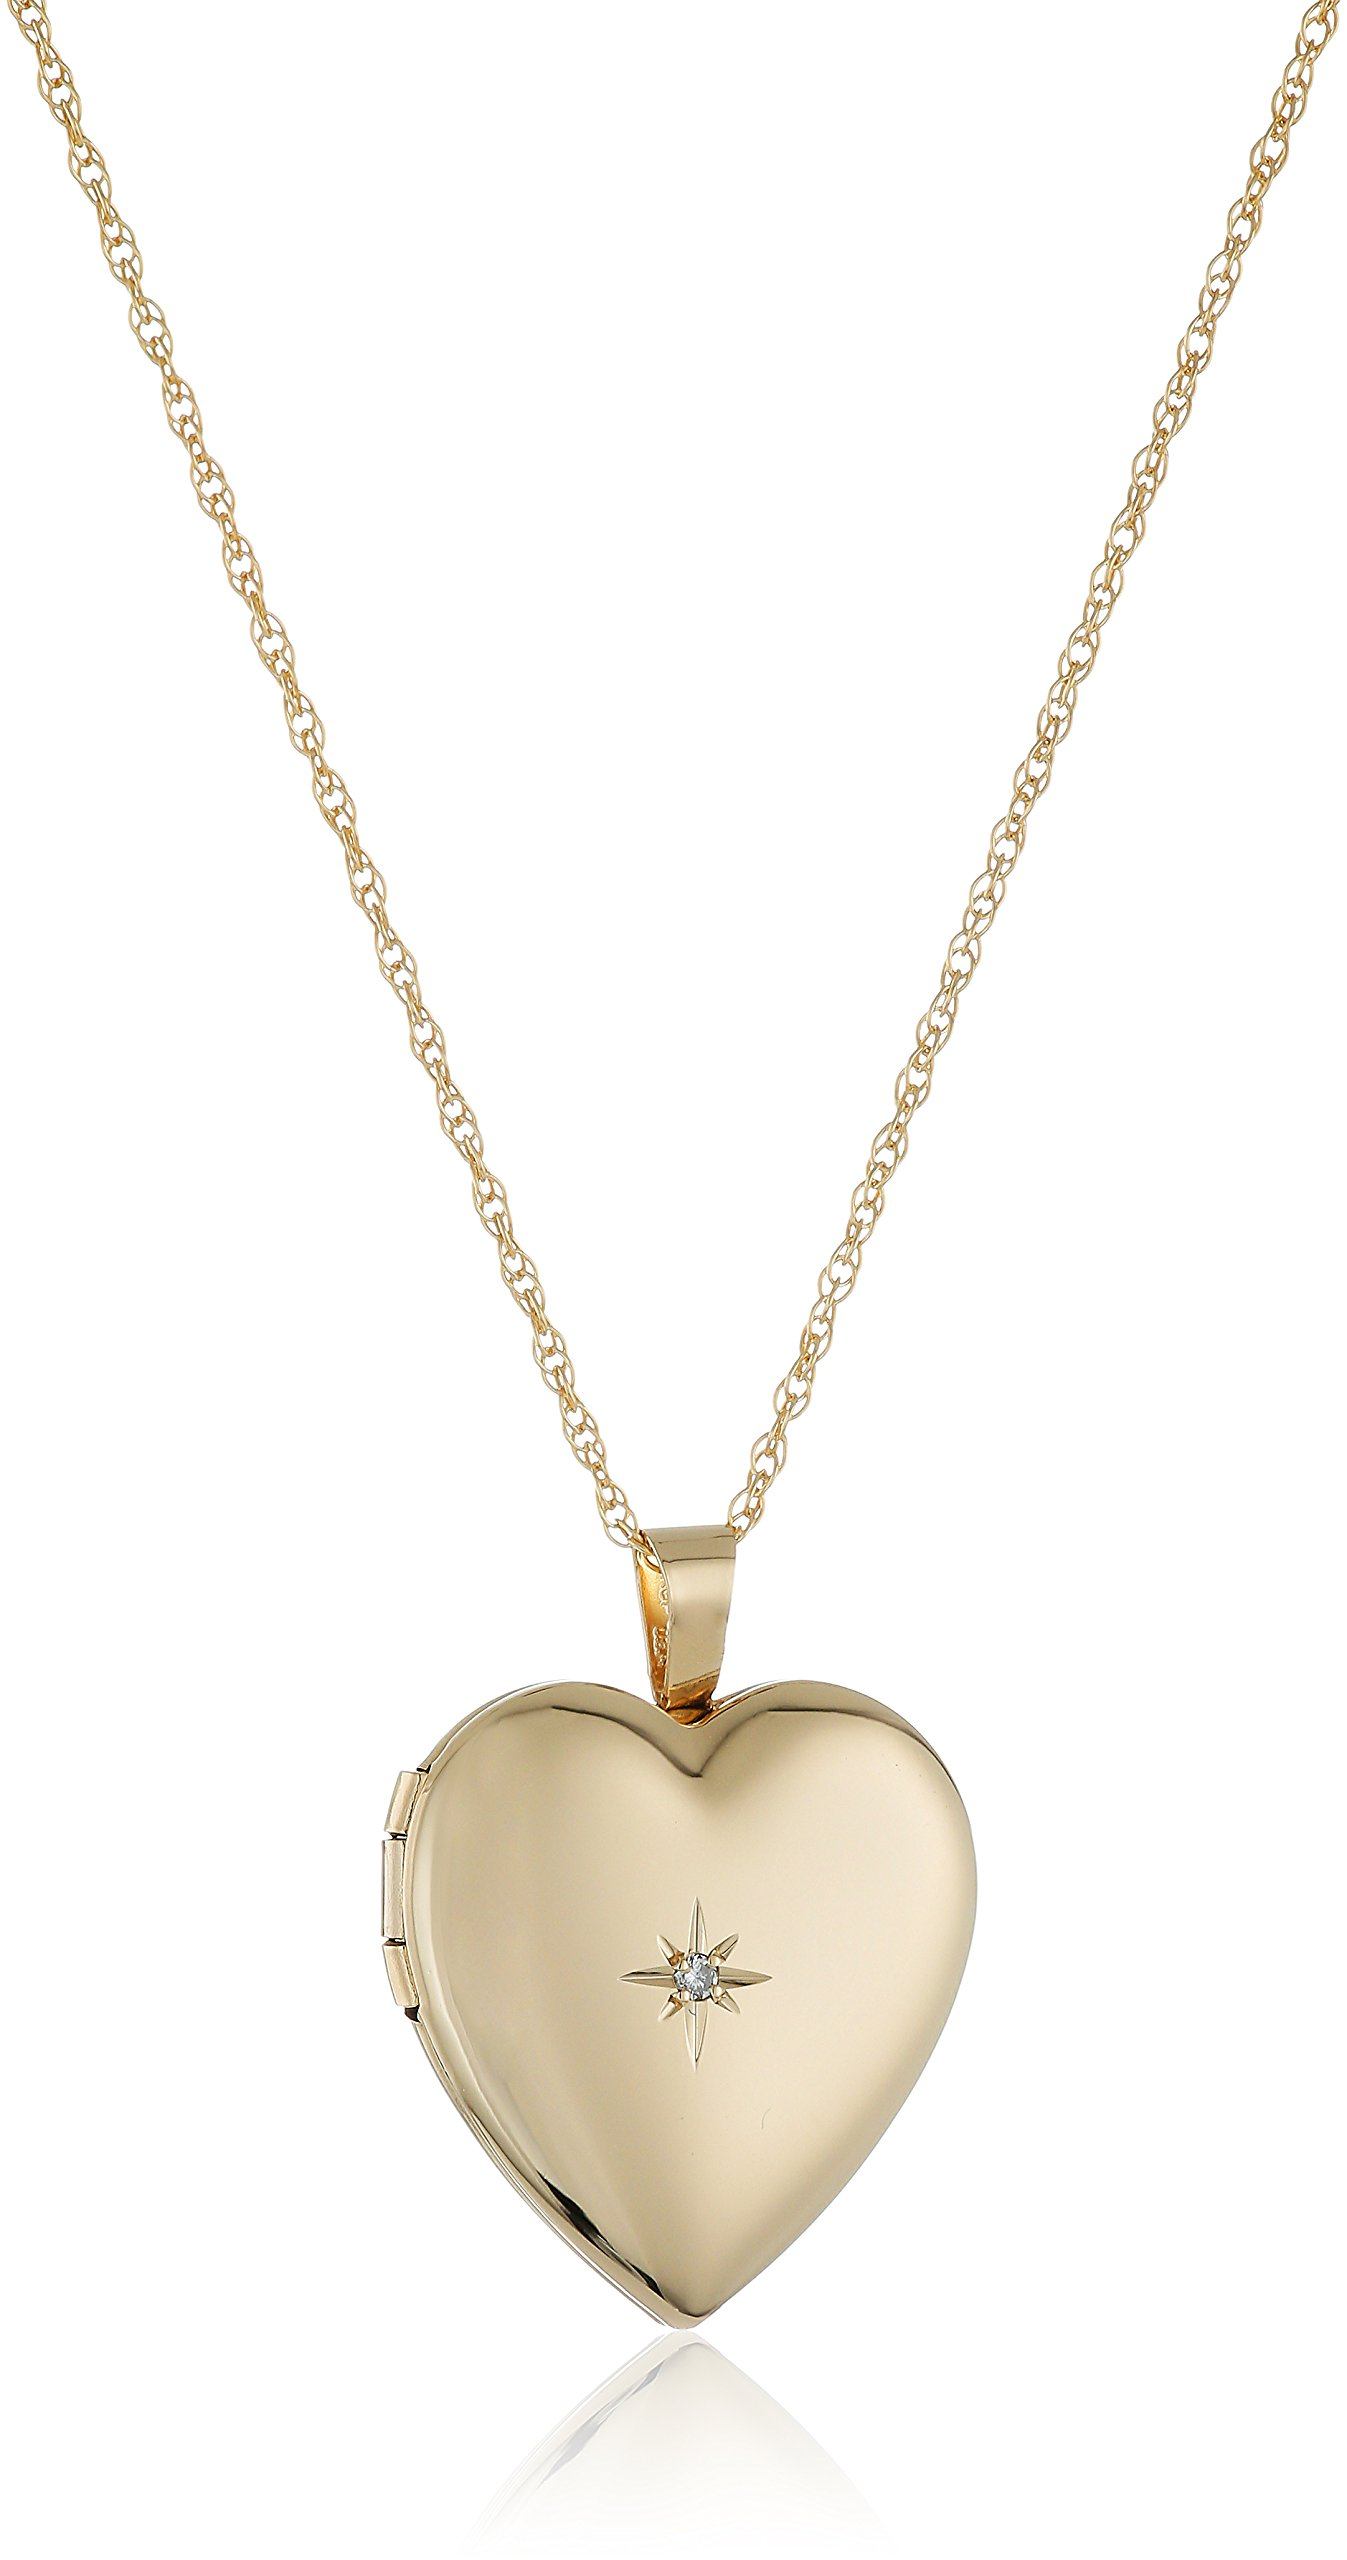 14k Gold-Filled Polished Heart Pendant with Genuine Diamond Locket Necklace, 18''